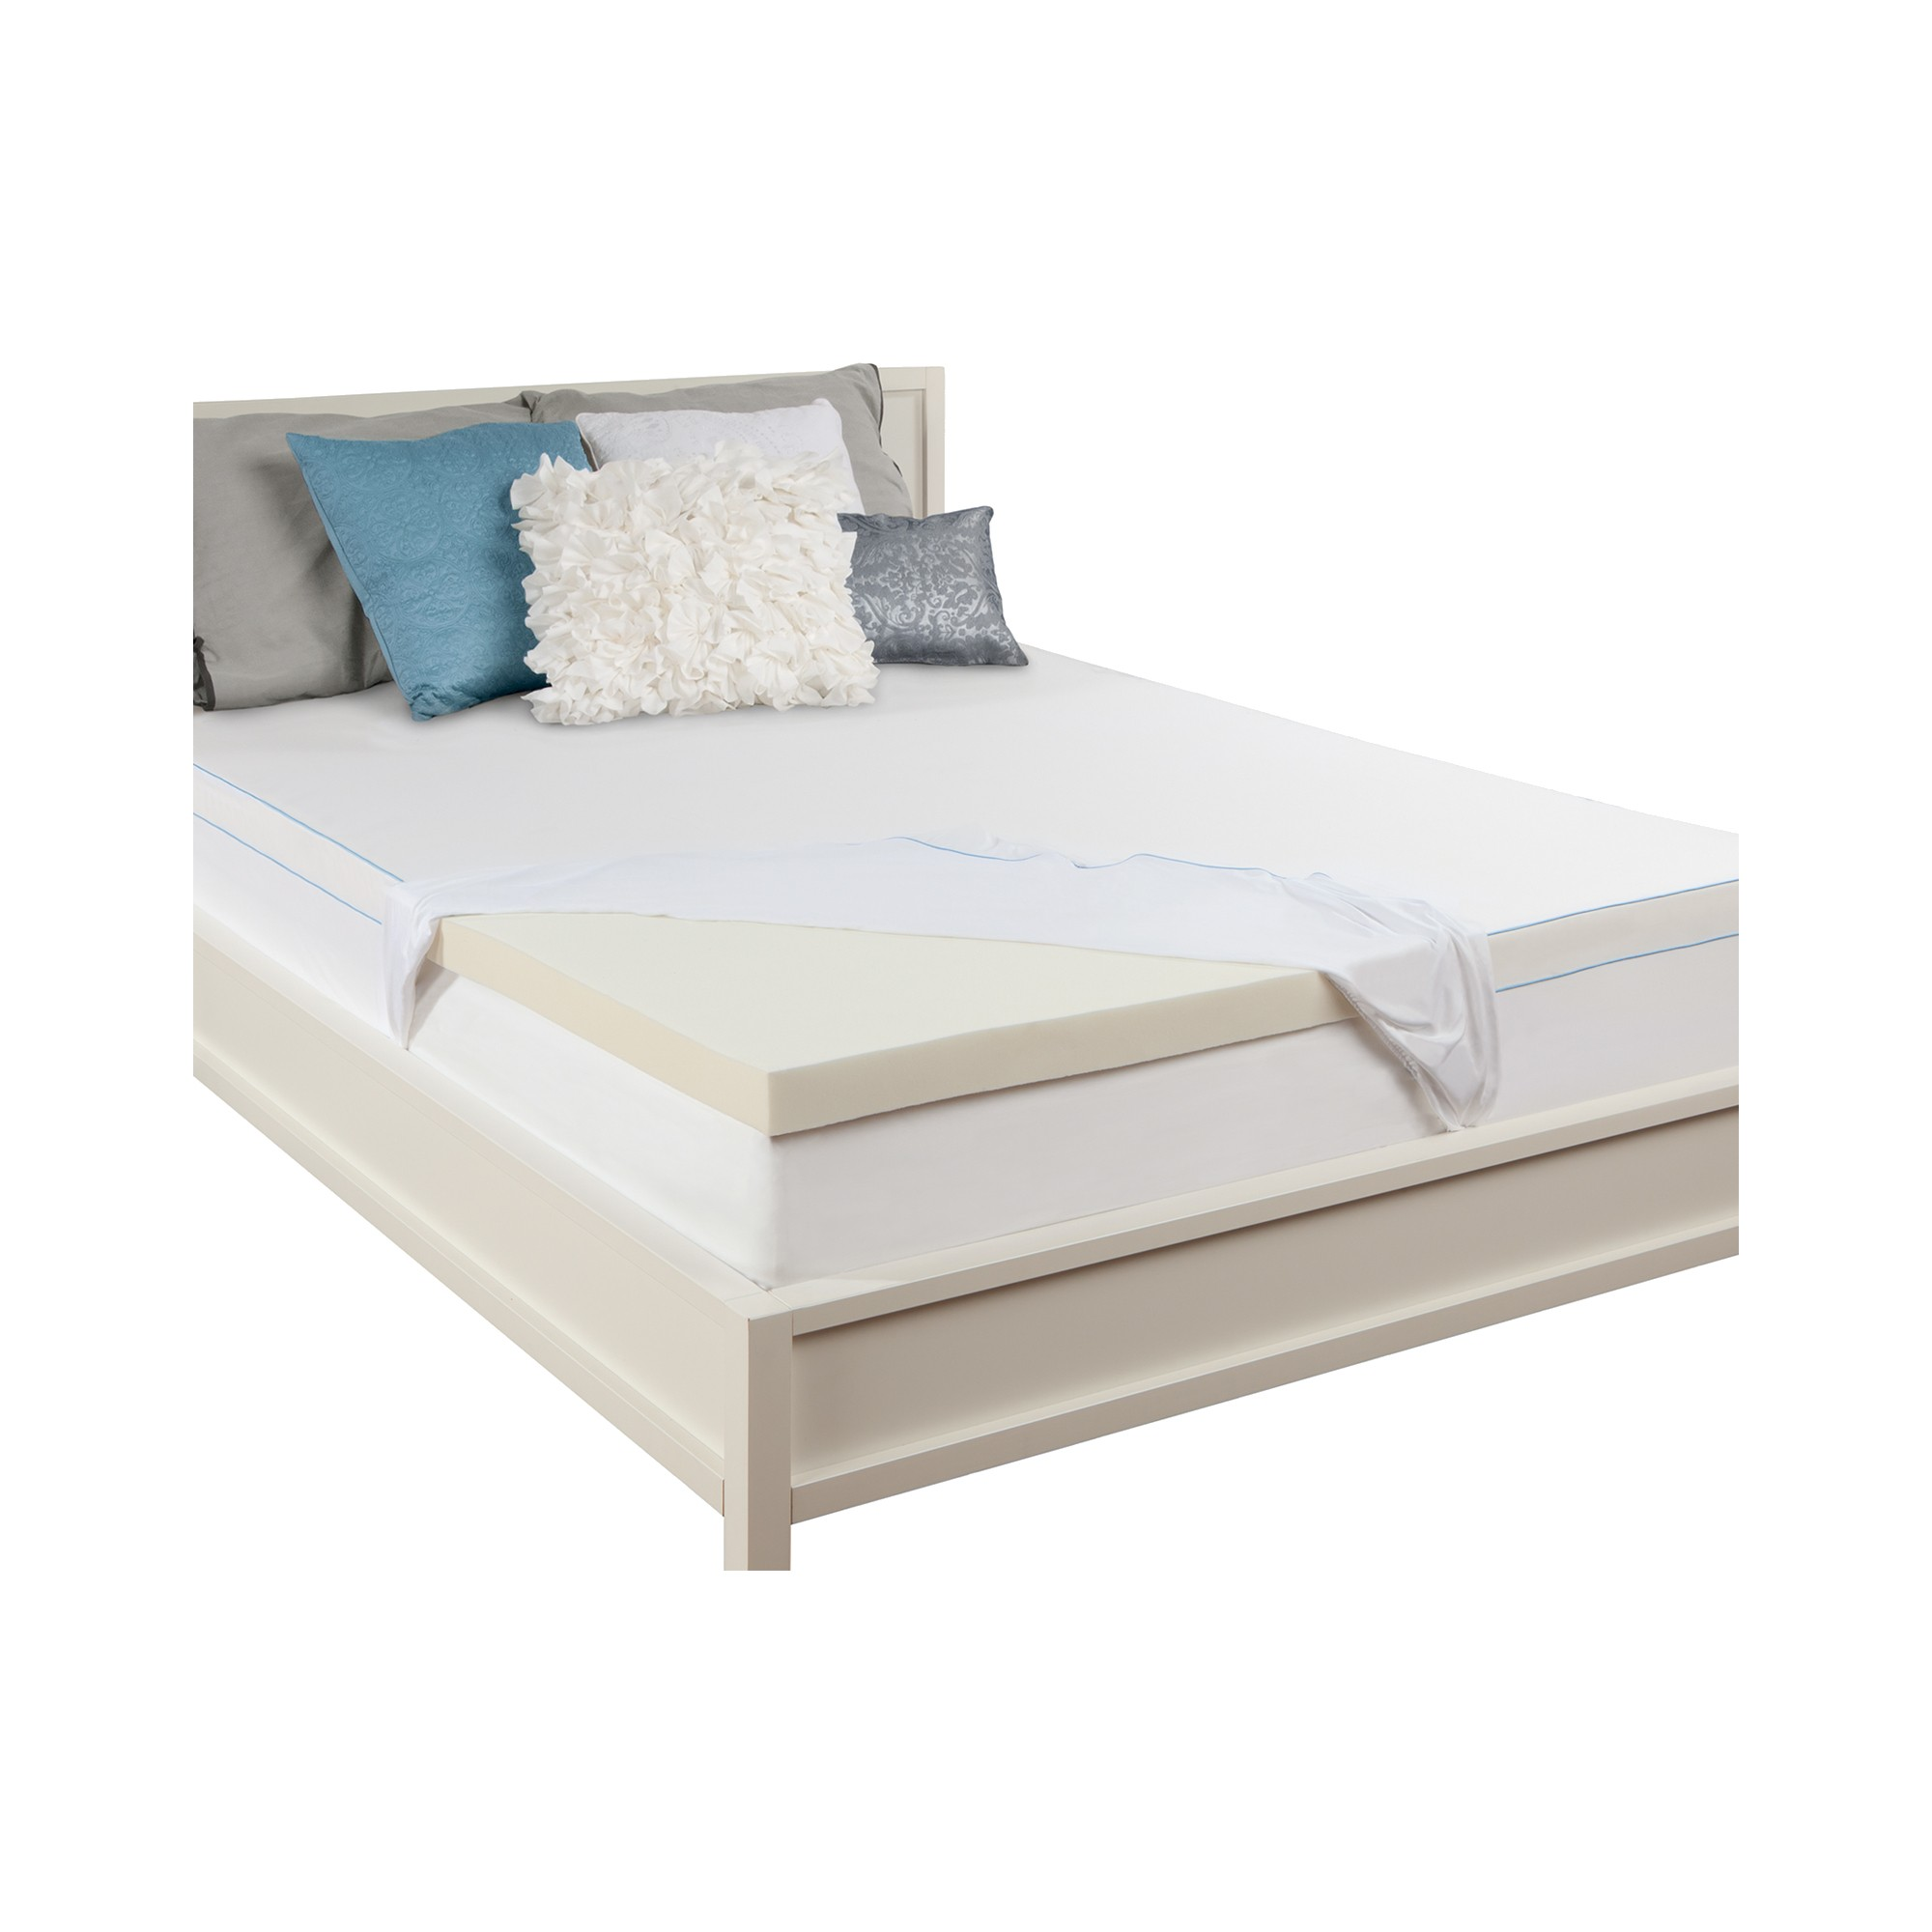 firm comfort memory your solutions bed thick mattress slumber king soft gel inch foam products size medium choose